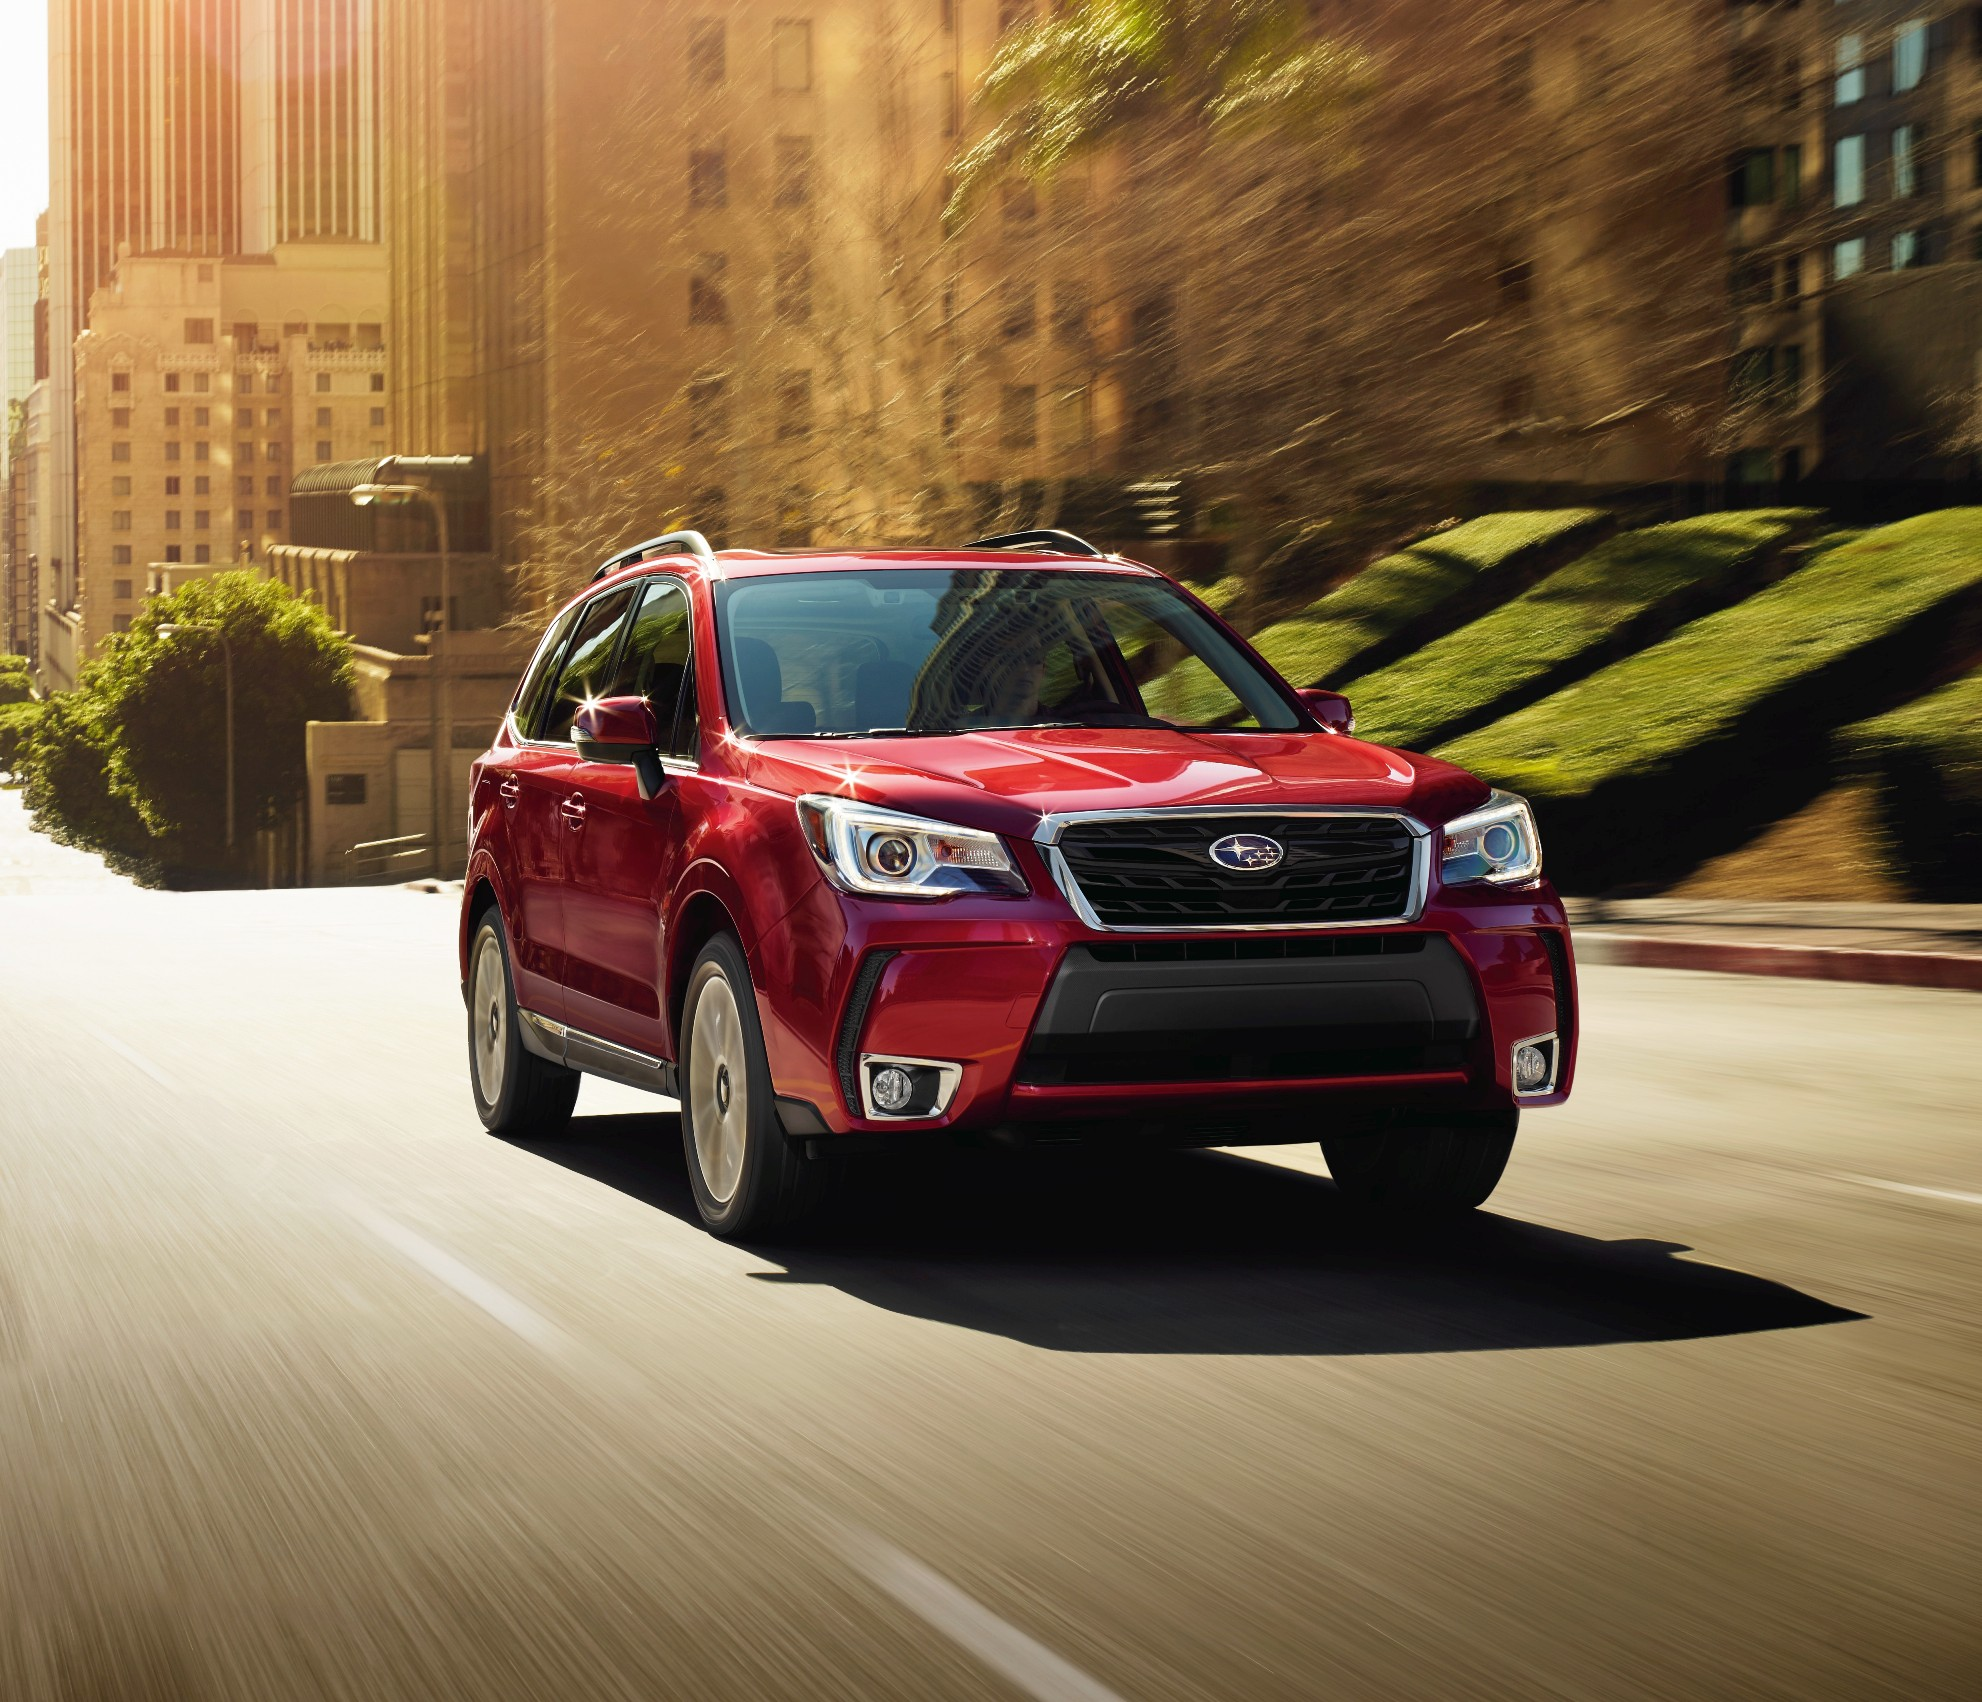 2018 Subaru Forester Overview - The News Wheel